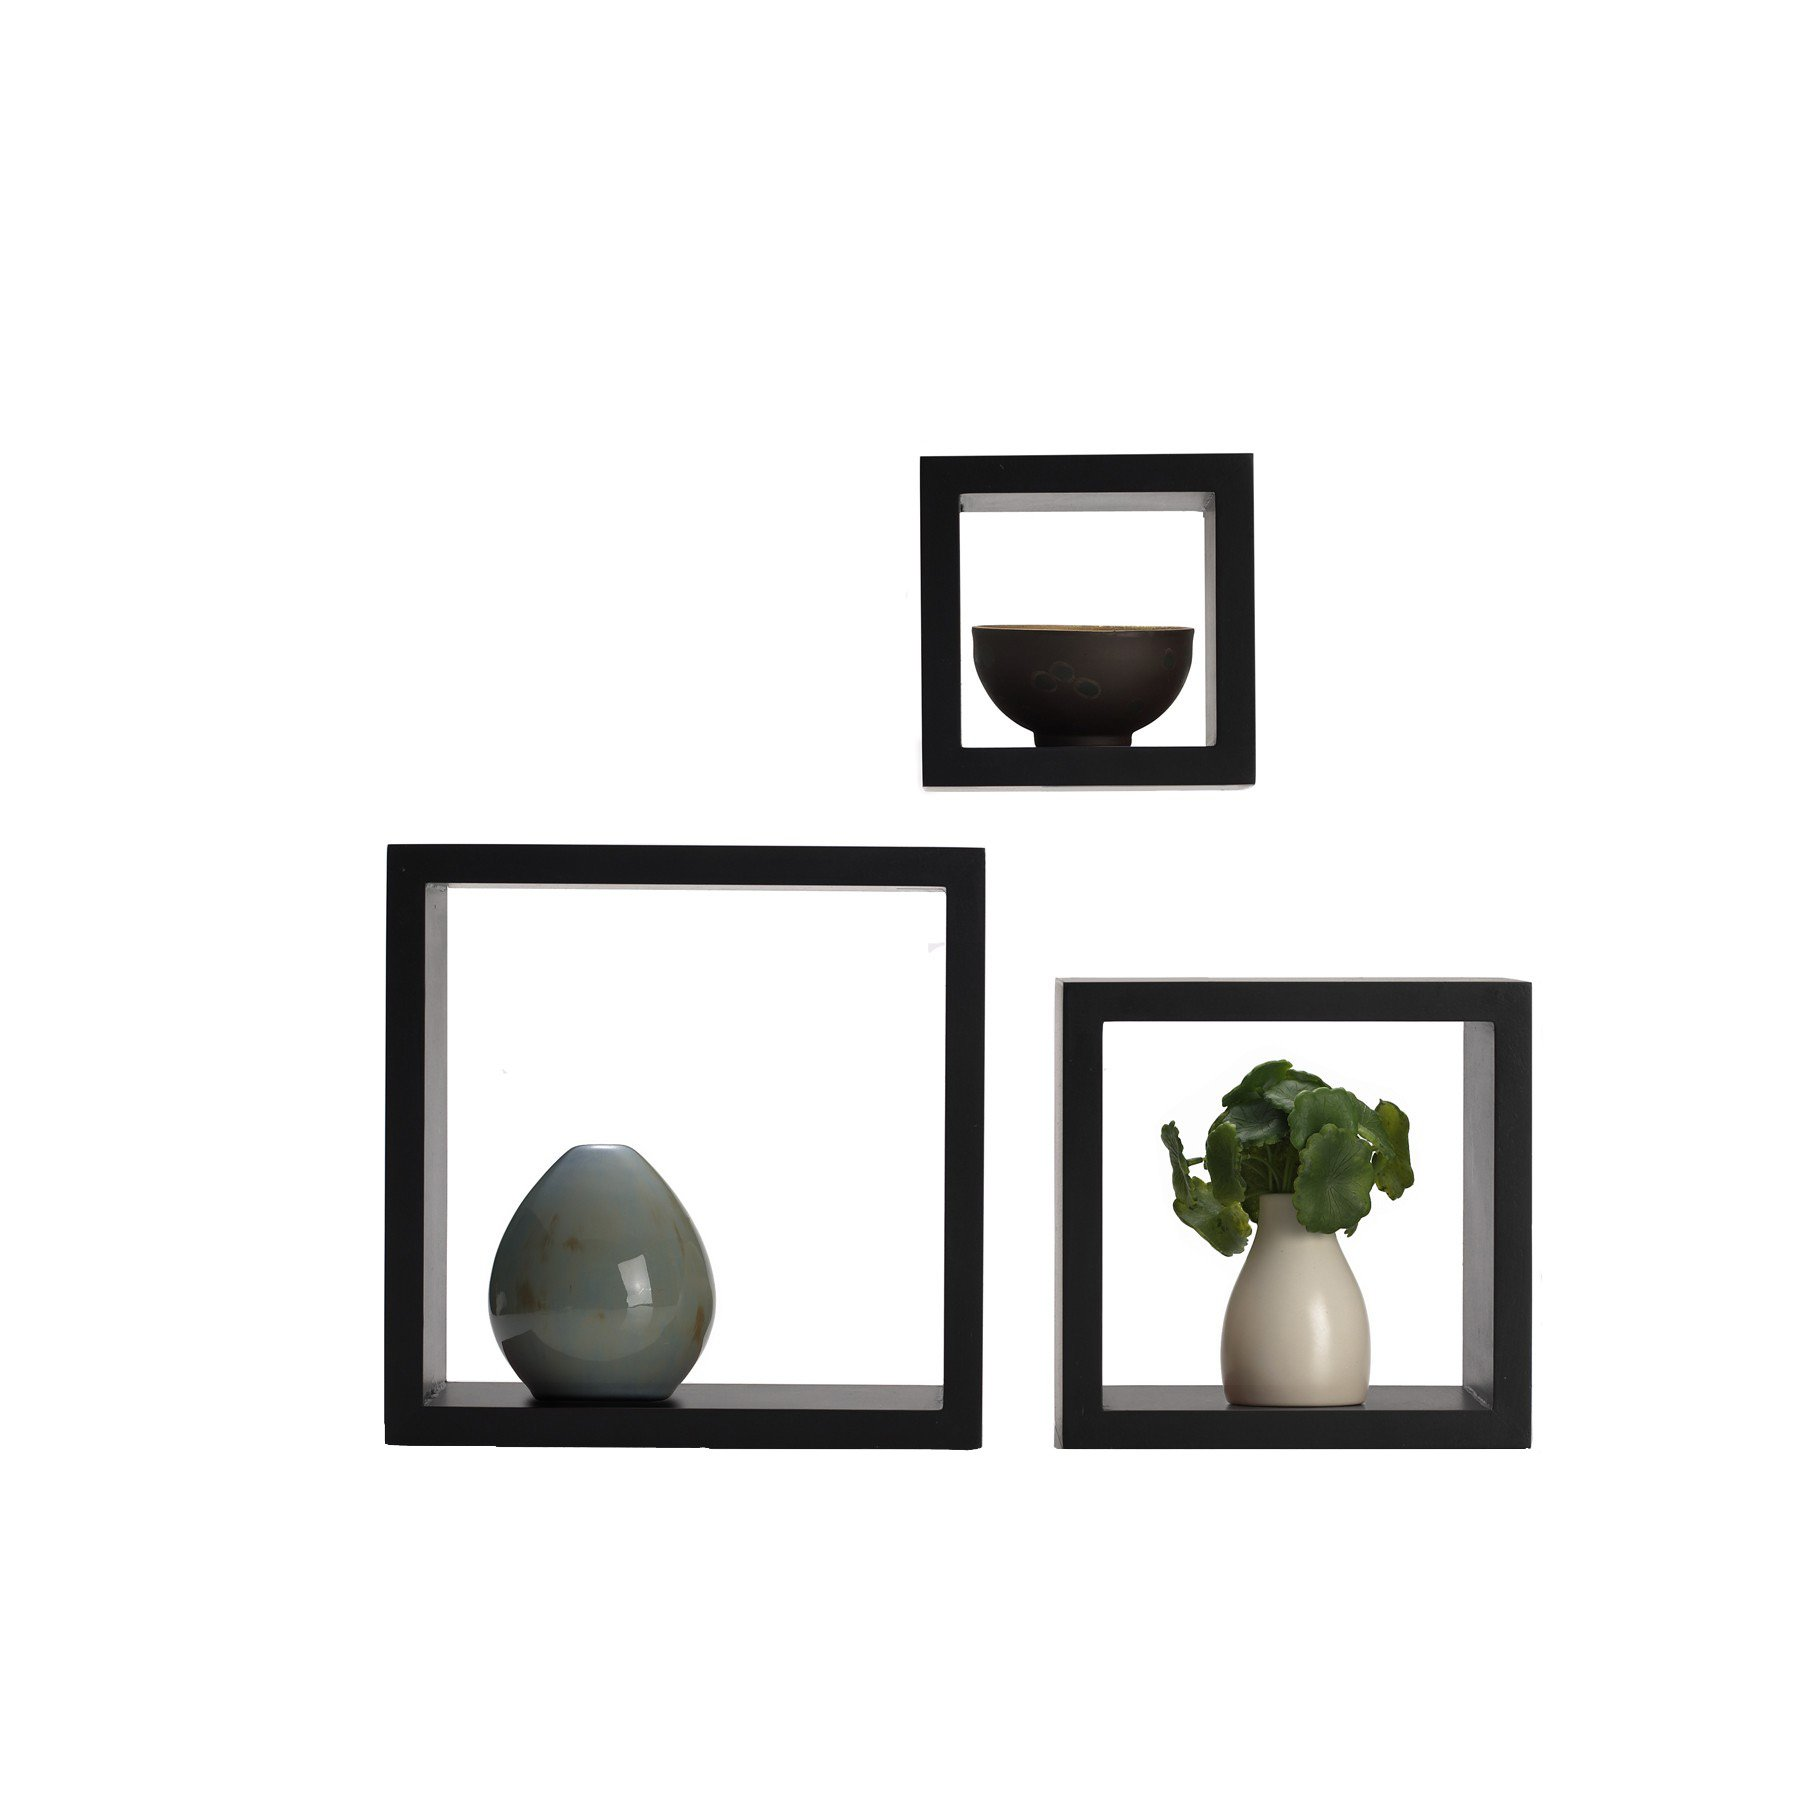 Decorative Wall Shelves Espresso : Floating square shelves cube wall mounted decorative